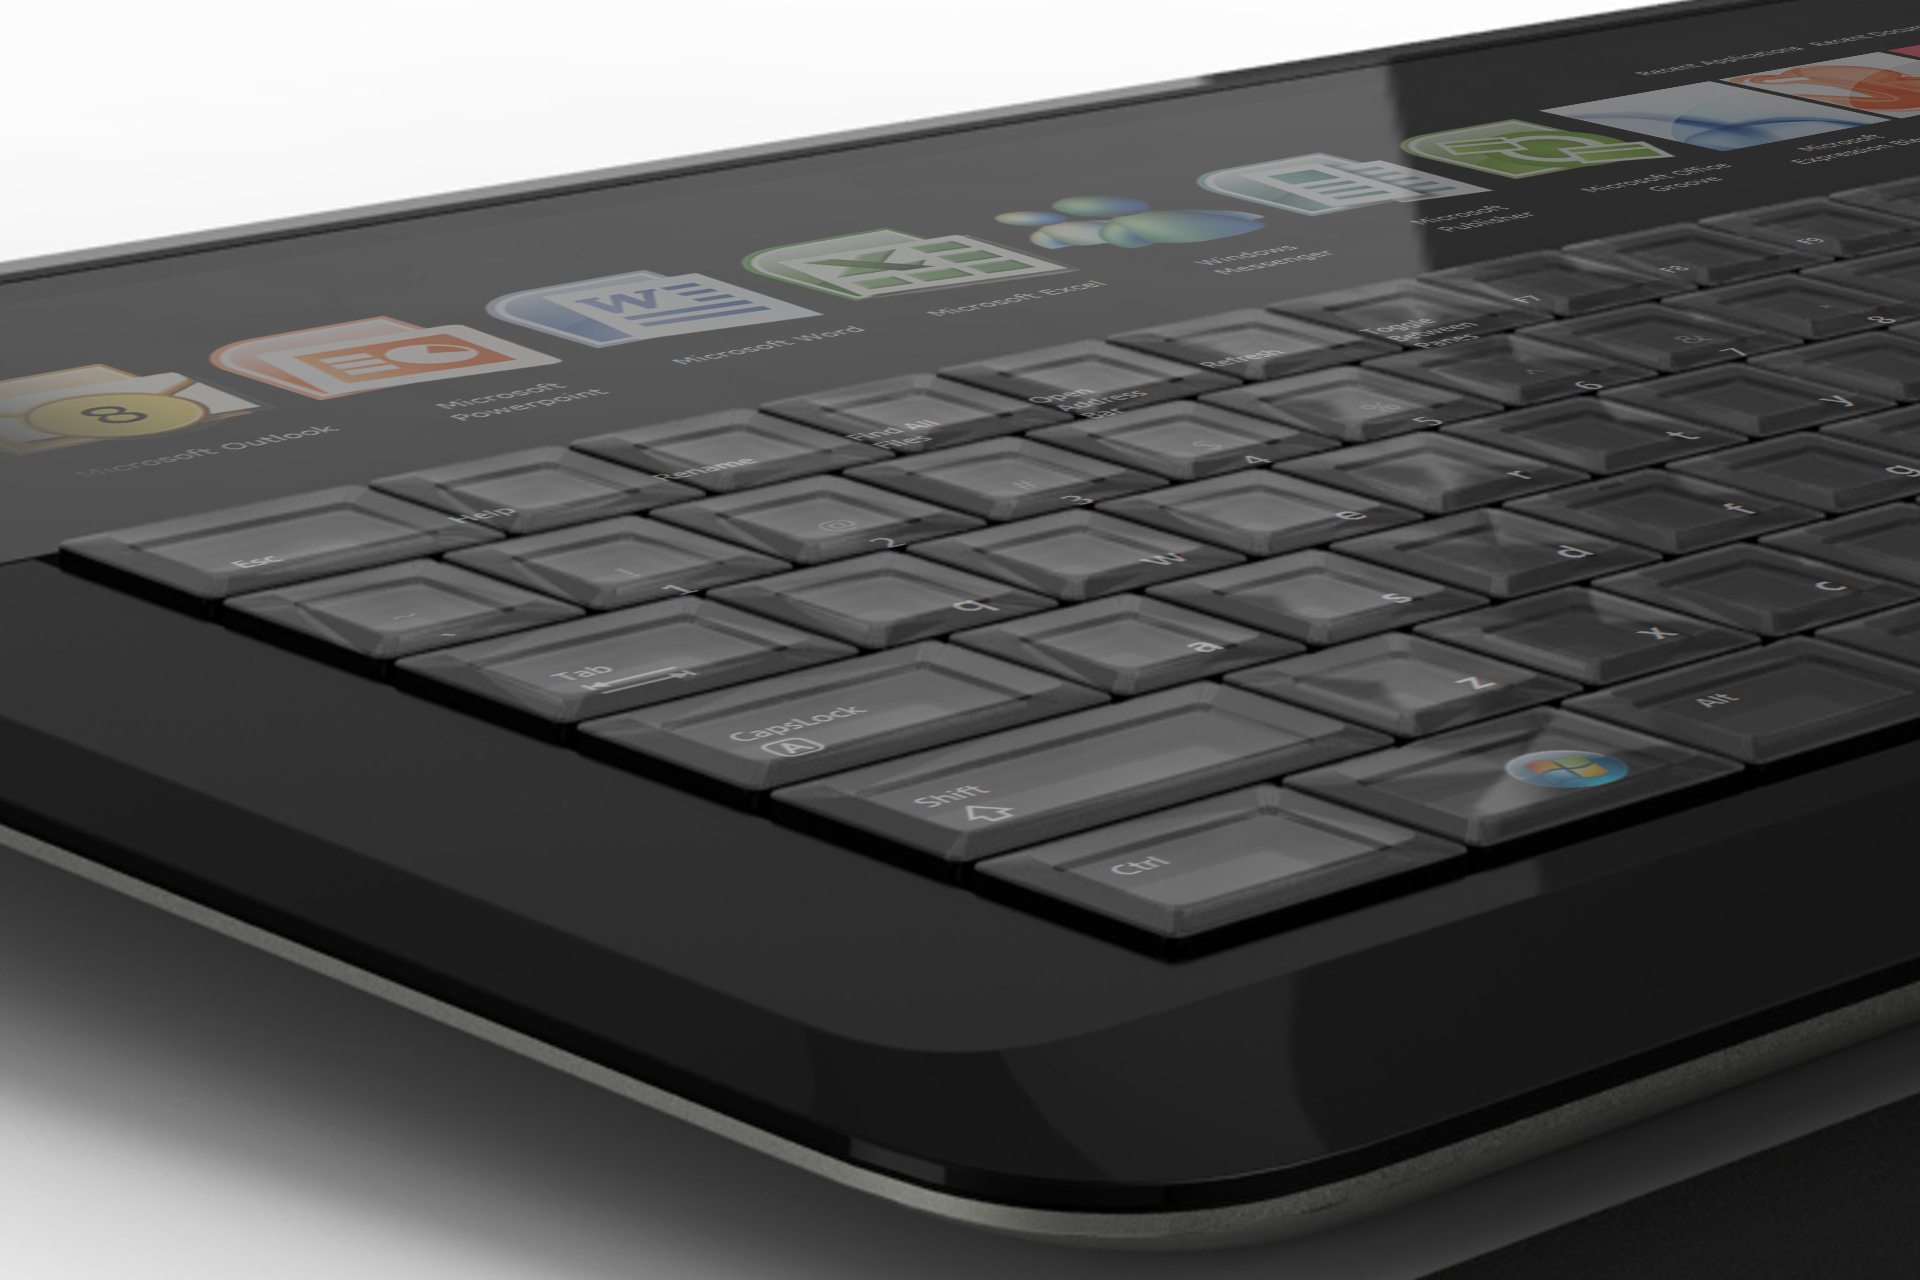 Adaptive Keyboard early product concept render